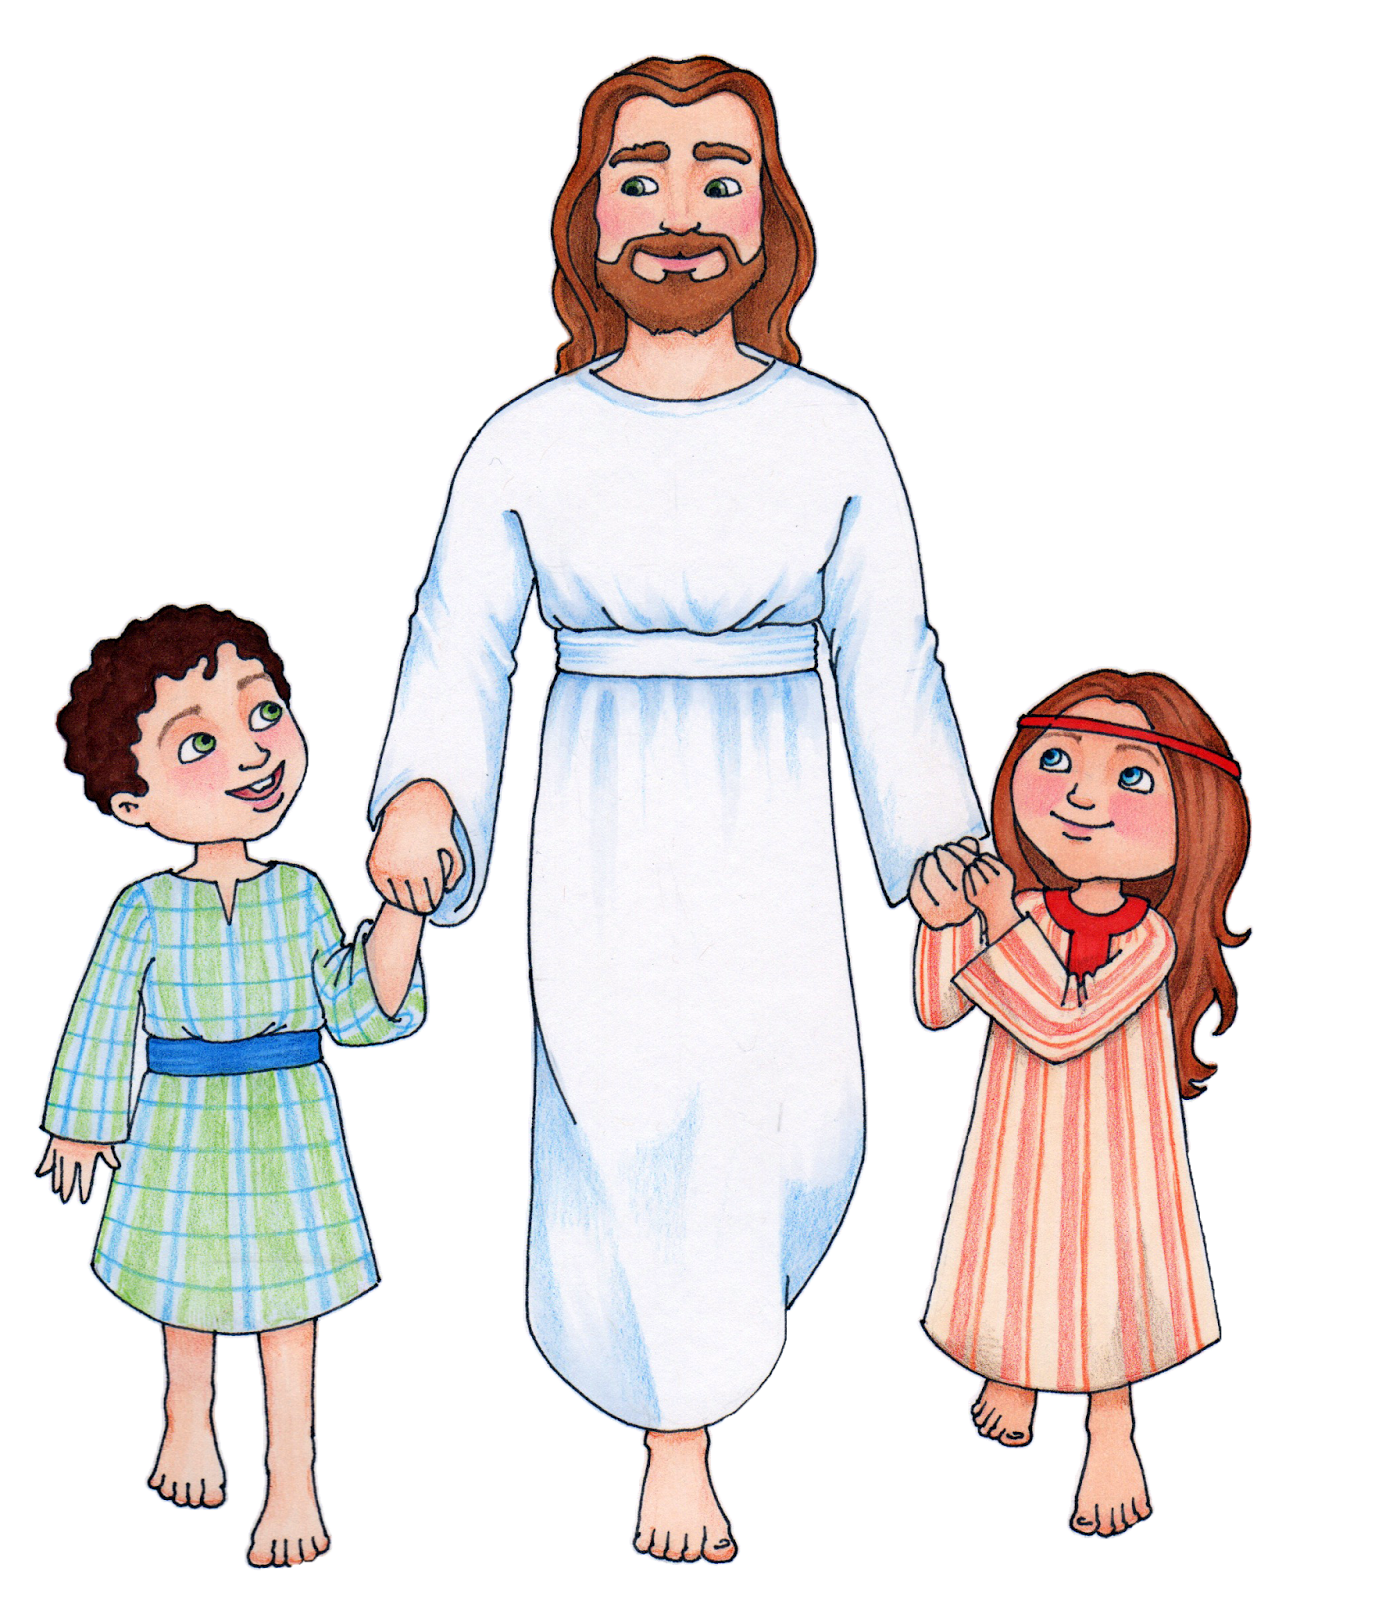 clipart cartoon jesus - photo #37